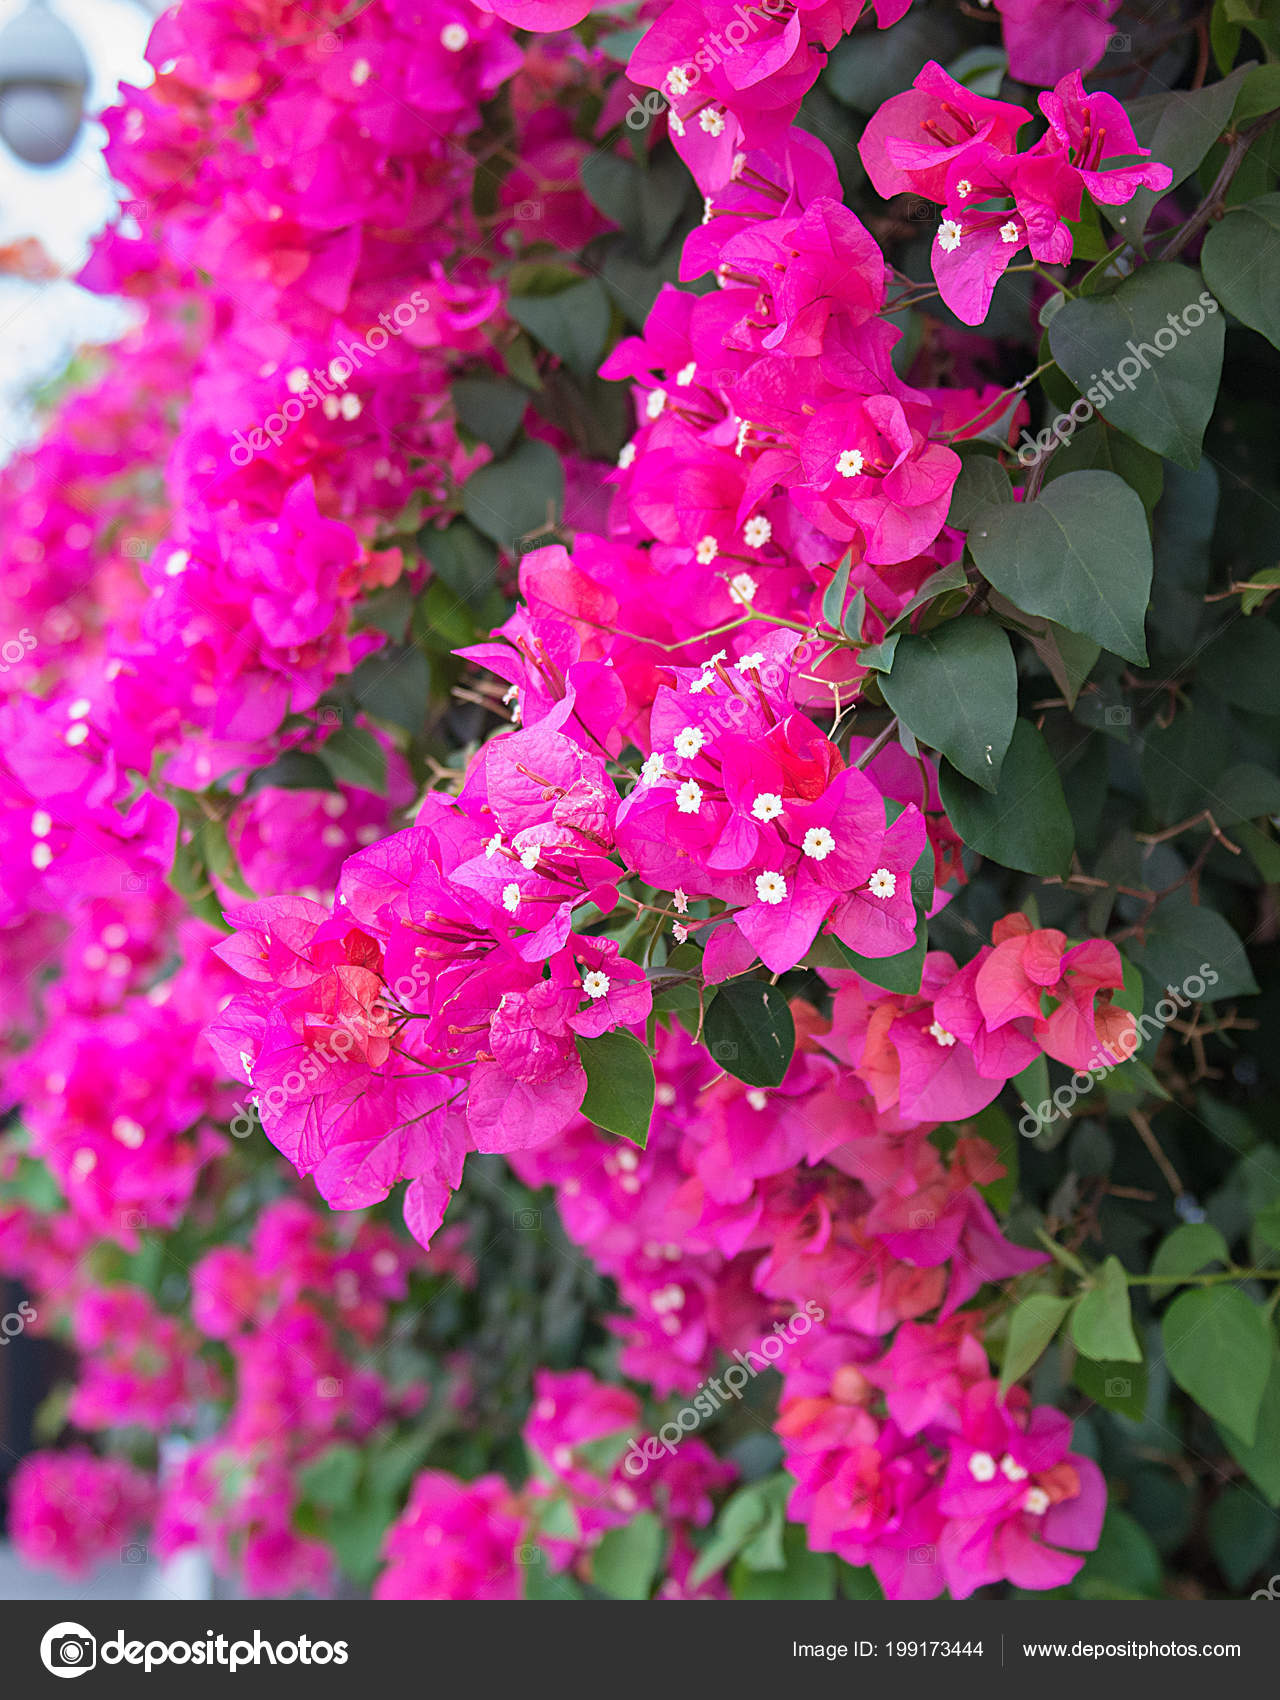 Beautiful tropical flowers the bush strizhennom ratut many bright beautiful tropical flowers the bush strizhennom ratut many bright juicy colors in hot climates tropical asia photo by juliza03 izmirmasajfo